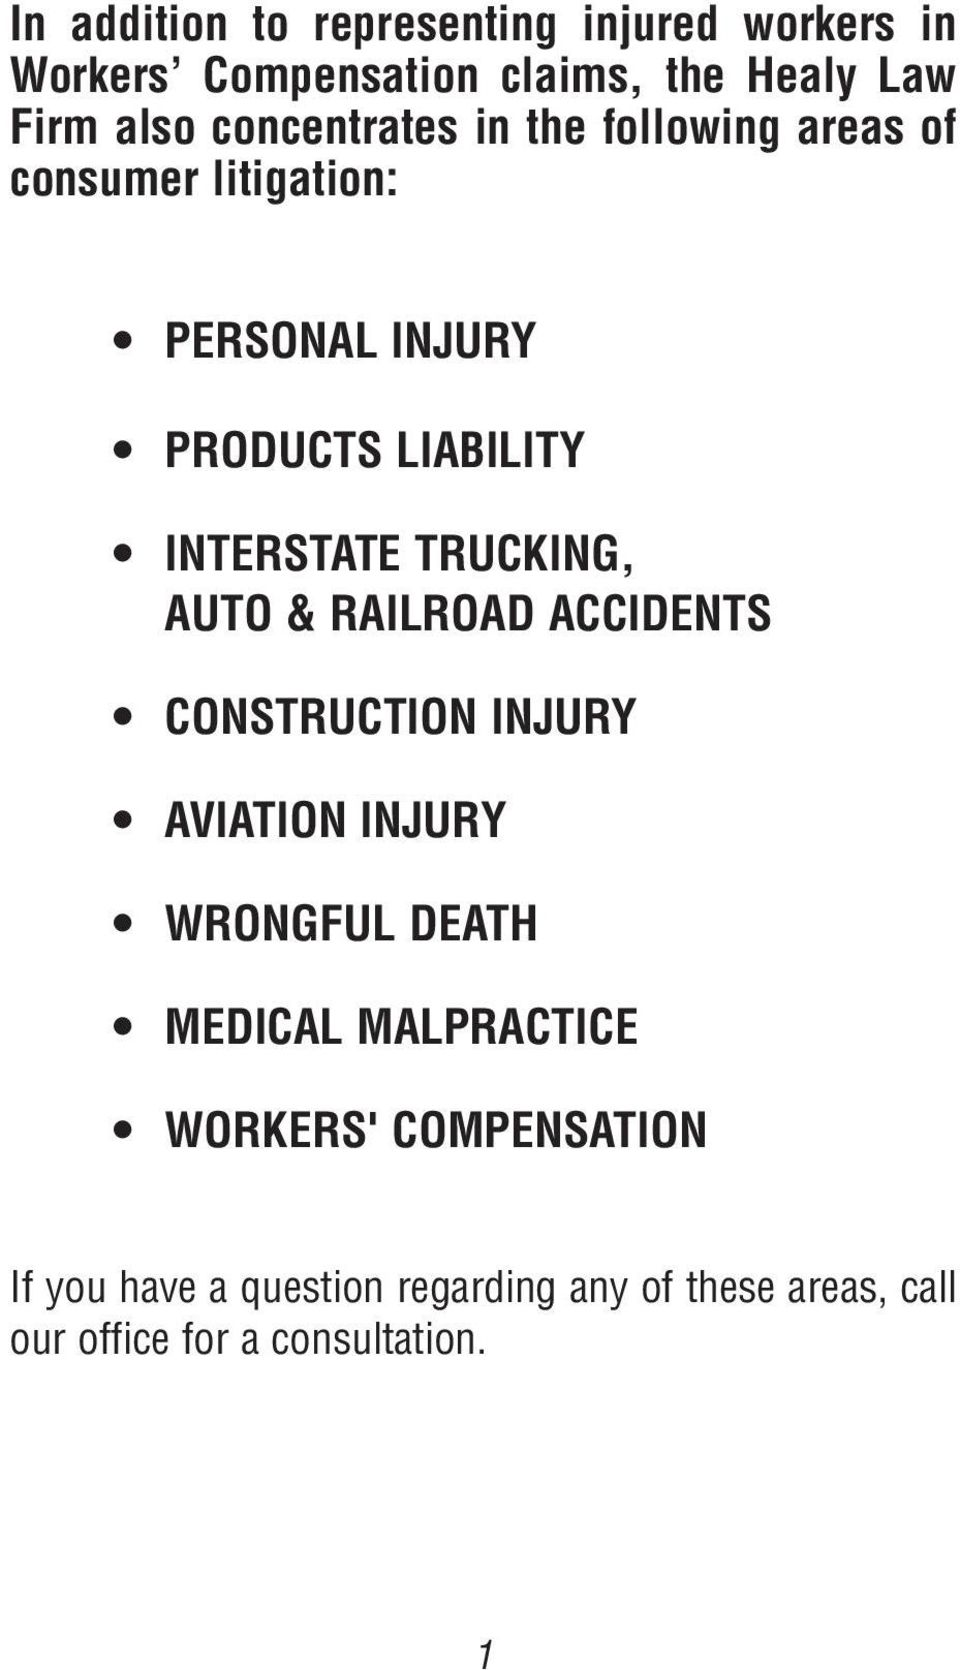 TRUCKING, AUTO & RAILROAD ACCIDENTS CONSTRUCTION INJURY AVIATION INJURY WRONGFUL DEATH MEDICAL MALPRACTICE